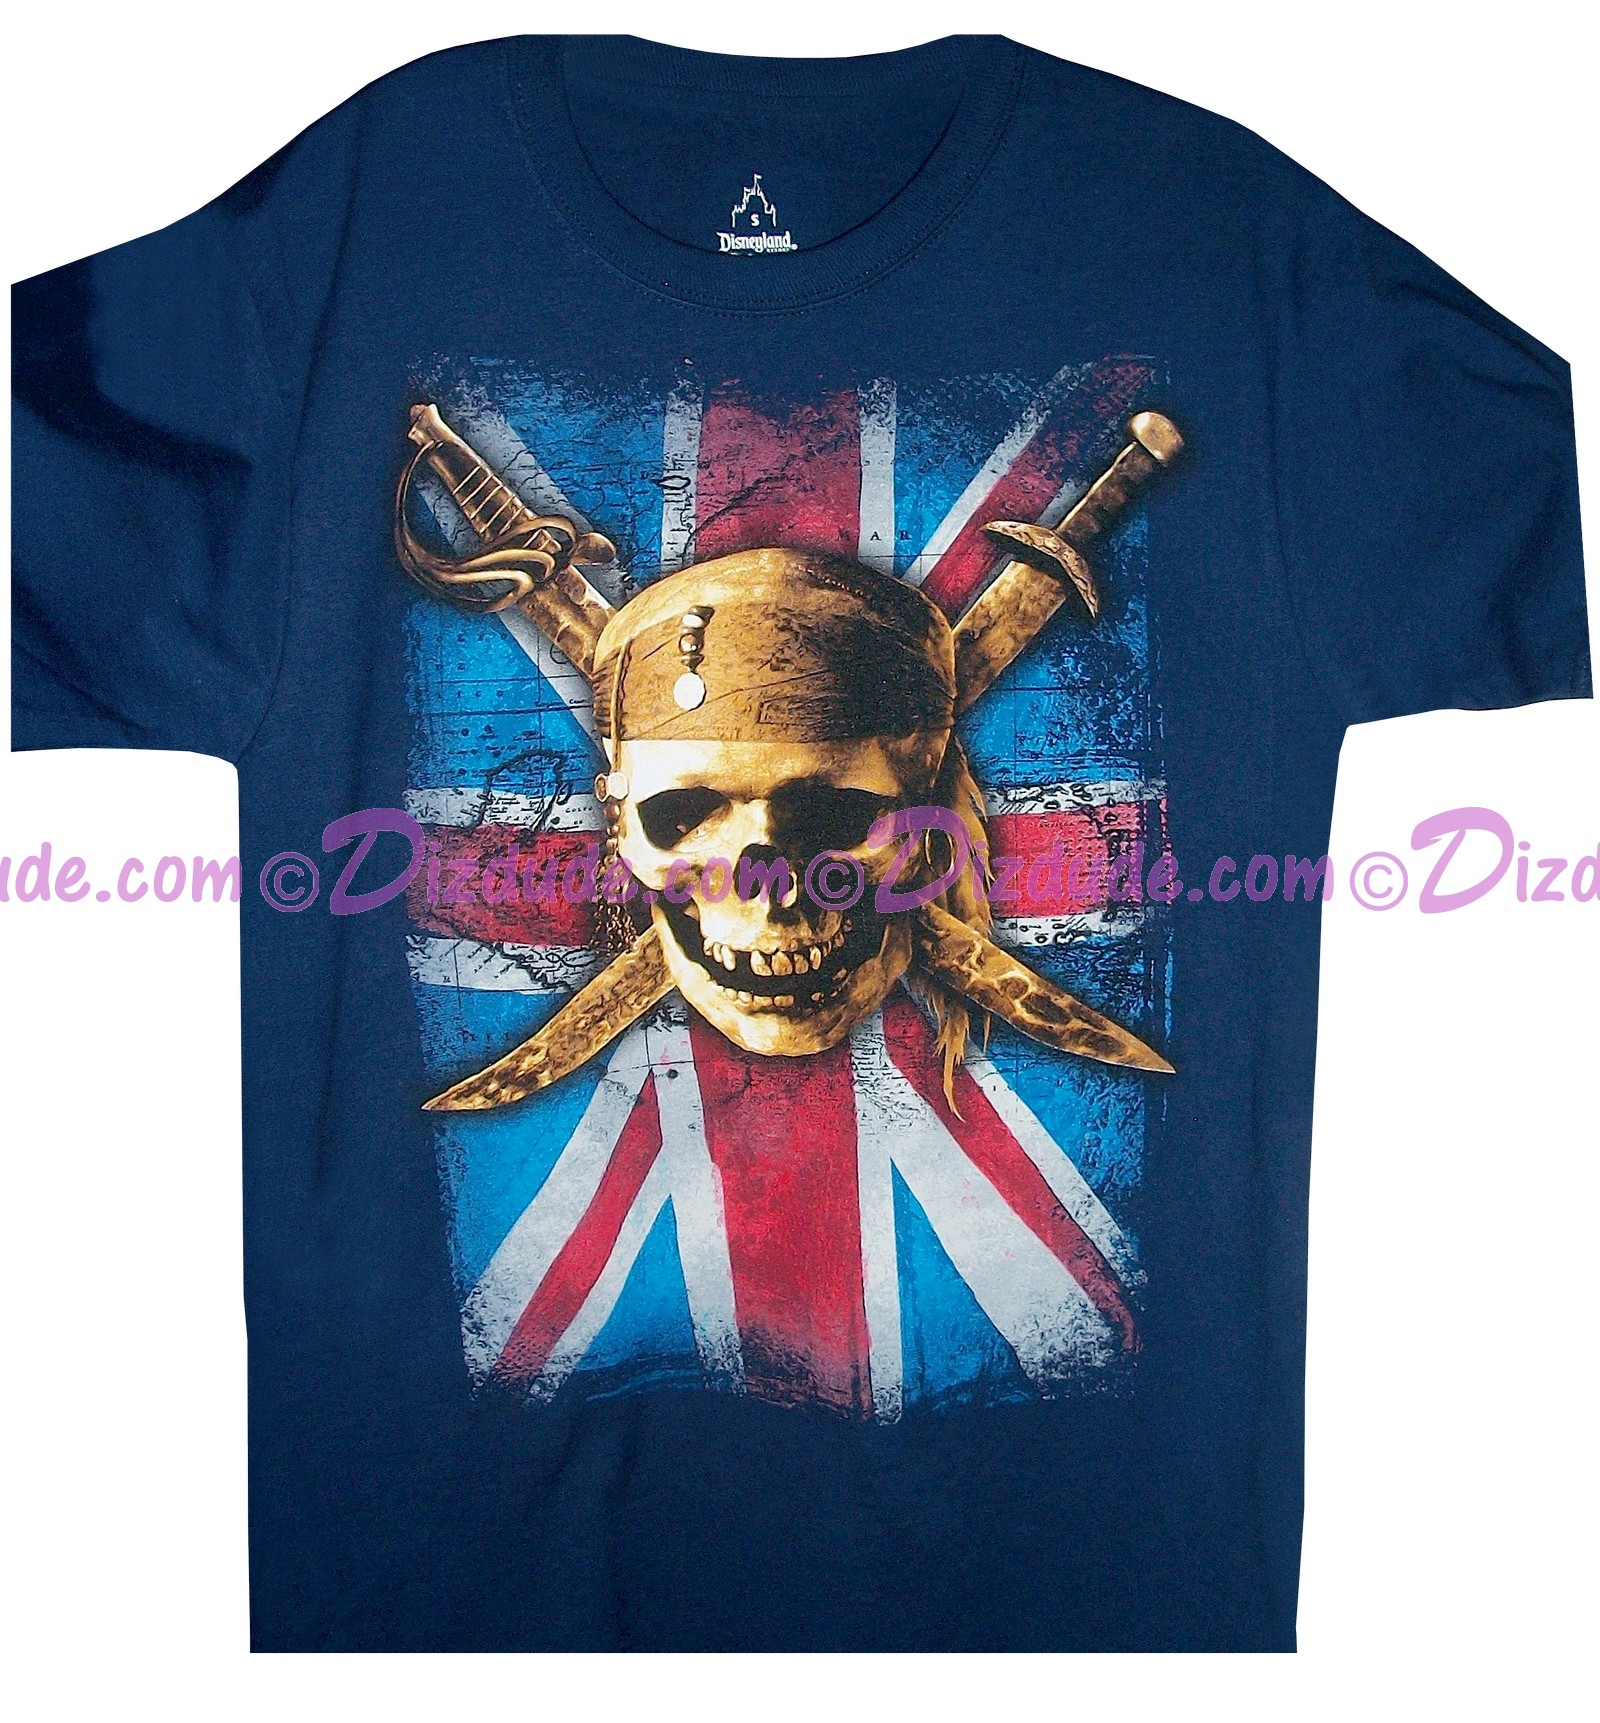 Disney Vintage Pirates of the Caribbean Union Jack and Skull and Cross Swords T-shirt (Tee, Tshirt or T shirt)